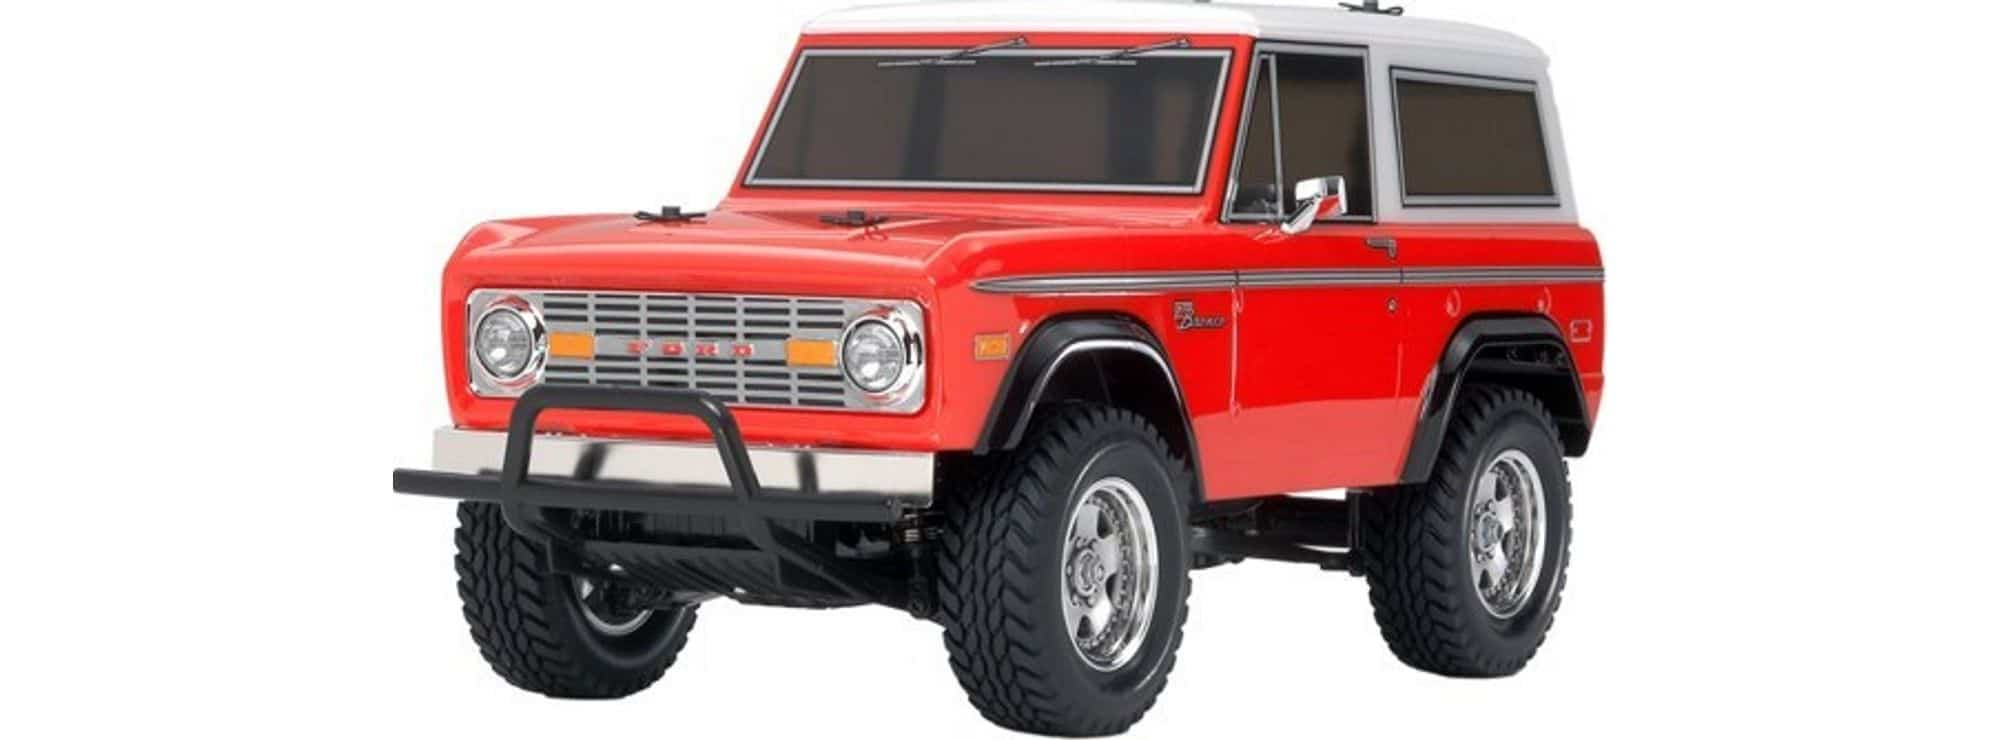 tamiya 58469 1 10 rc ford bronco 1973 cc 01 online kaufen bei modellbau h rtle. Black Bedroom Furniture Sets. Home Design Ideas